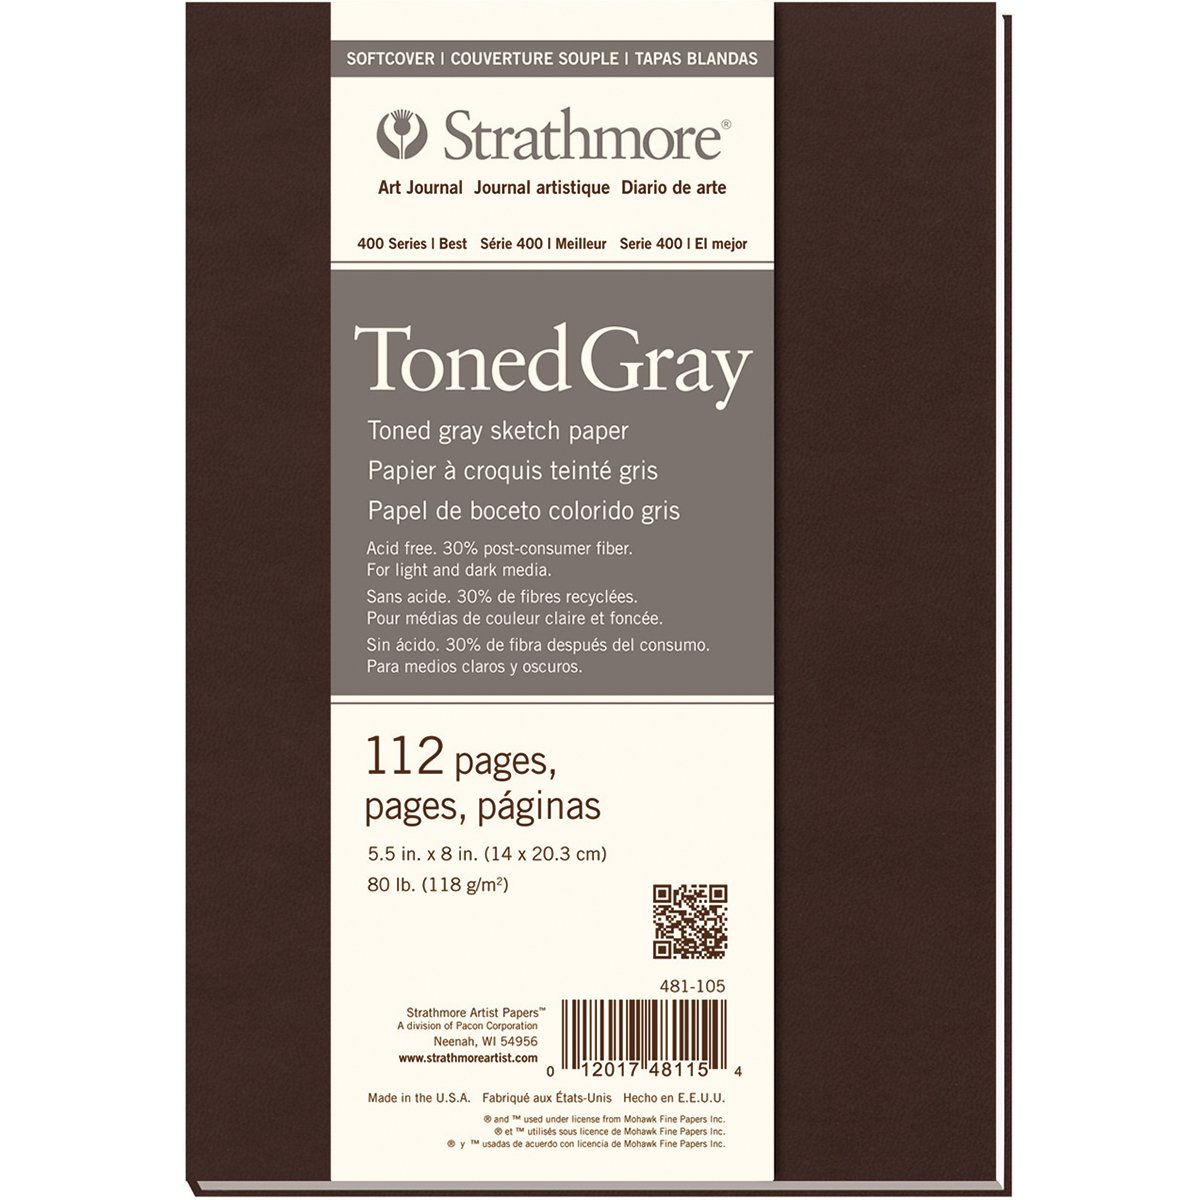 Pro-Art Strathmore Softcover Sketch Journal, 5.5 by 8-Inch, 112 Pages, Toned Gray 481-105